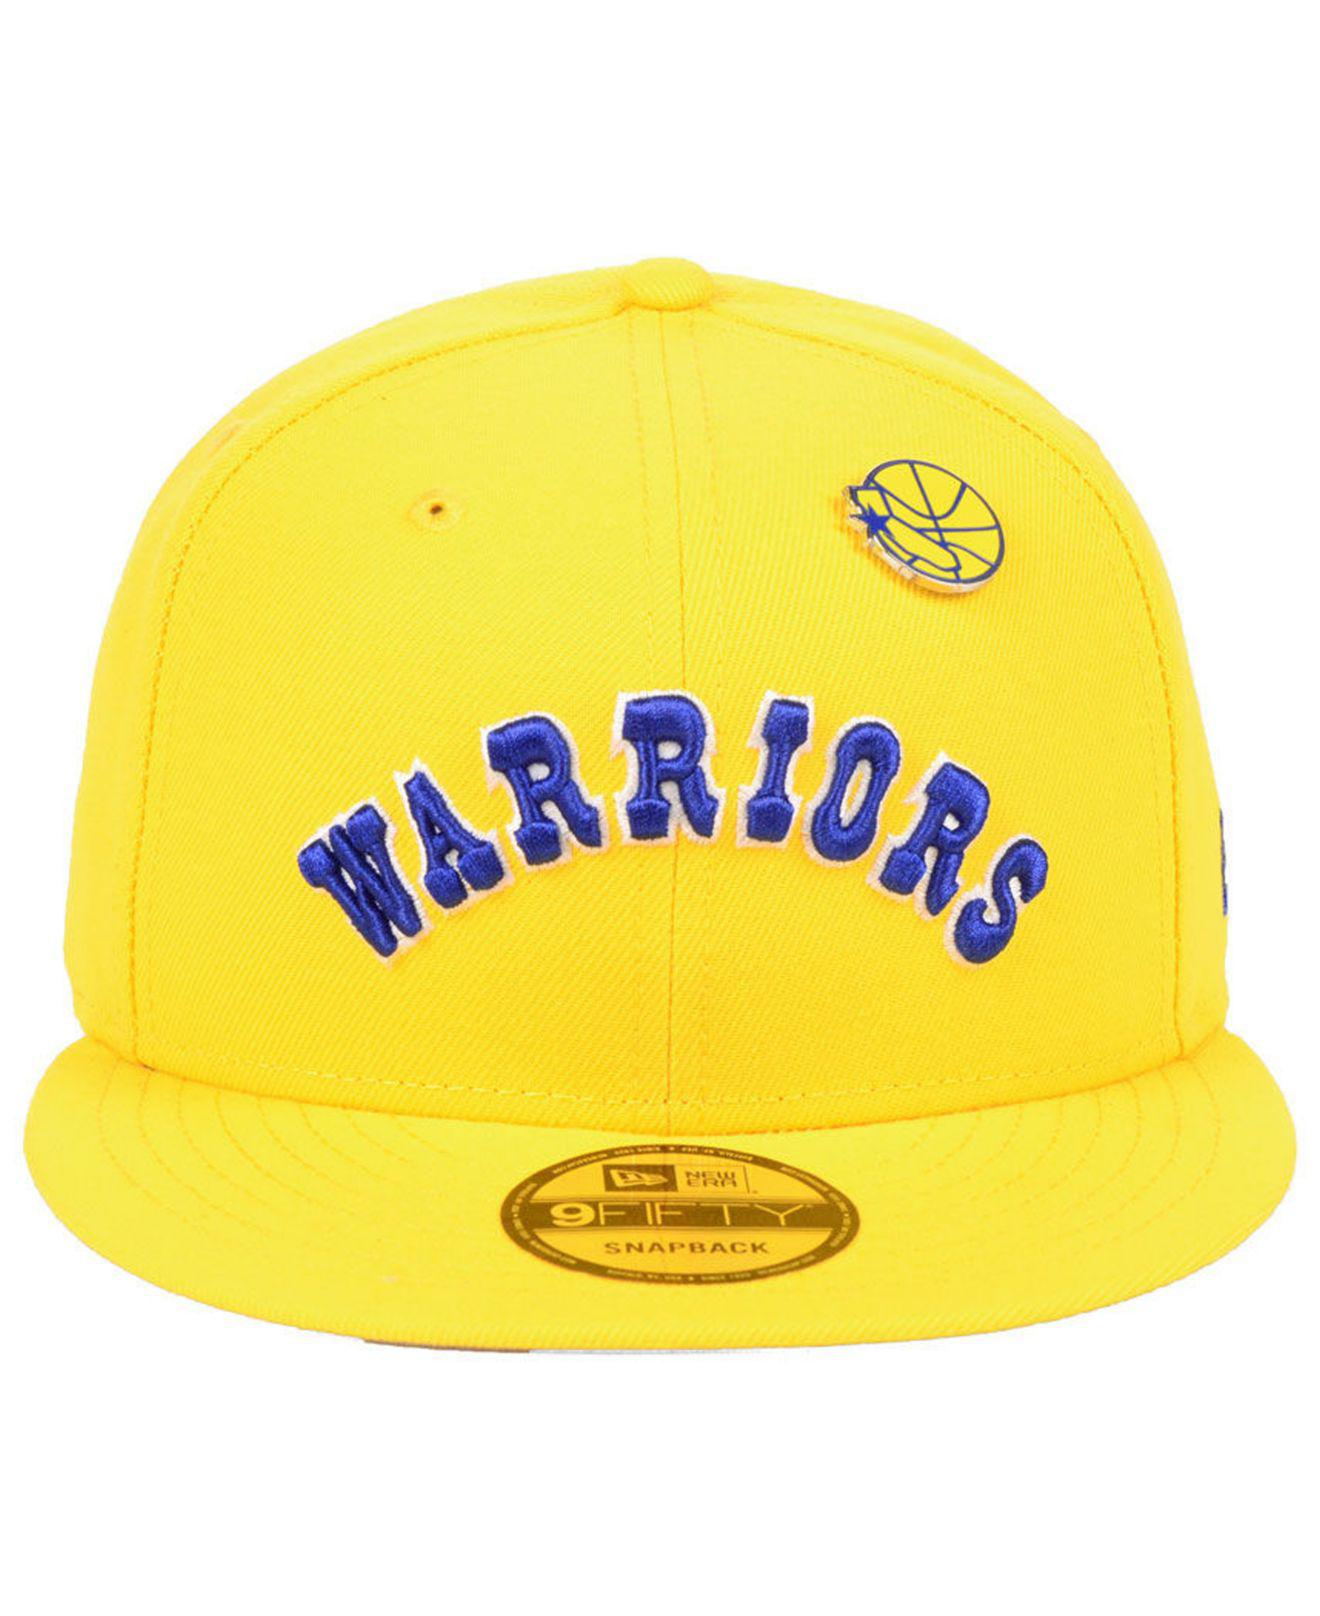 b2a14fbb0a13bf Lyst - KTZ Golden State Warriors Hardwood Classic Nights Pin 9fifty  Snapback Cap in Yellow for Men